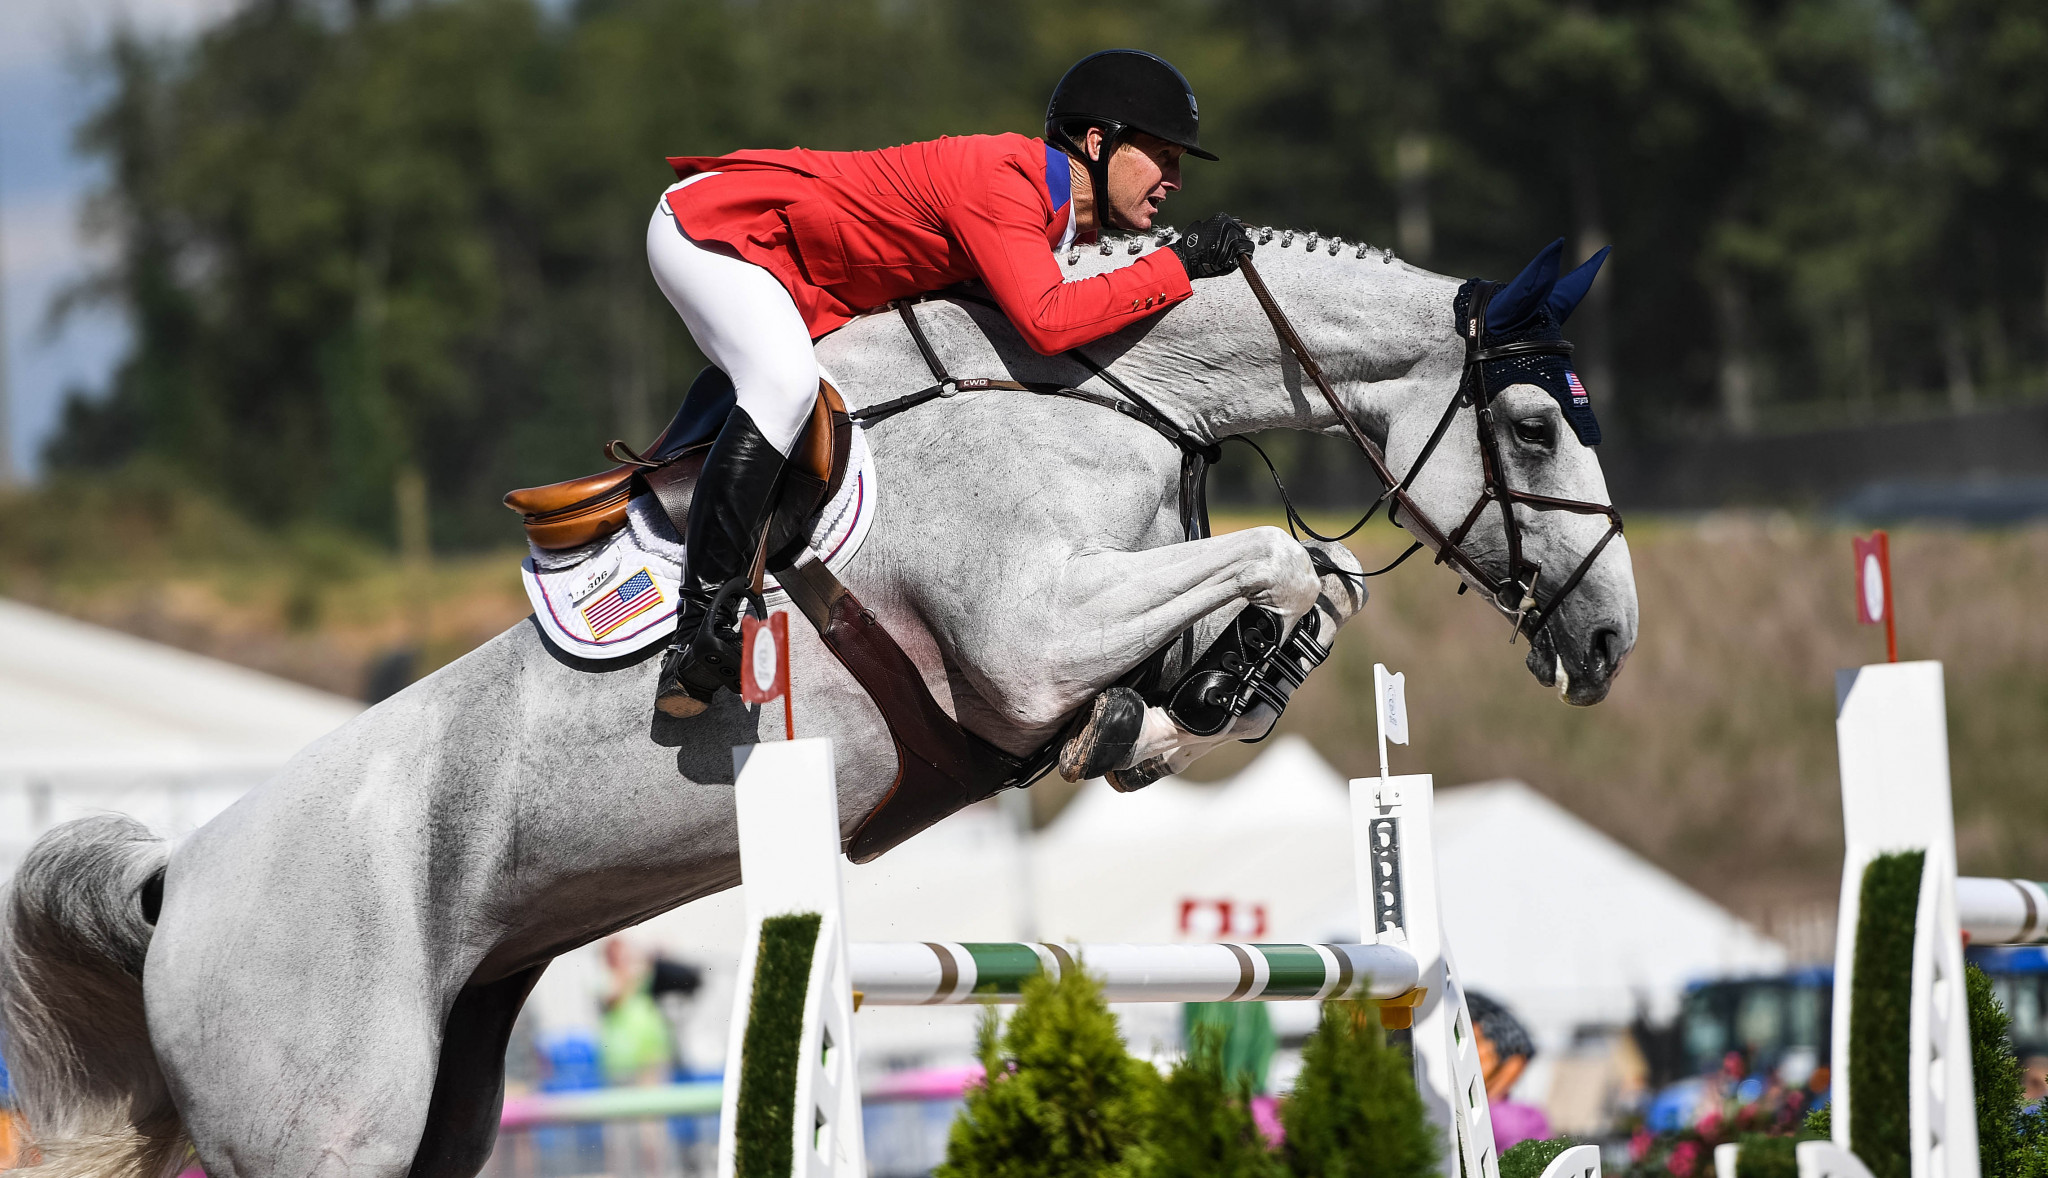 Ward rises to challenge to earn US first team jumping gold in FEI World Equestrian Games